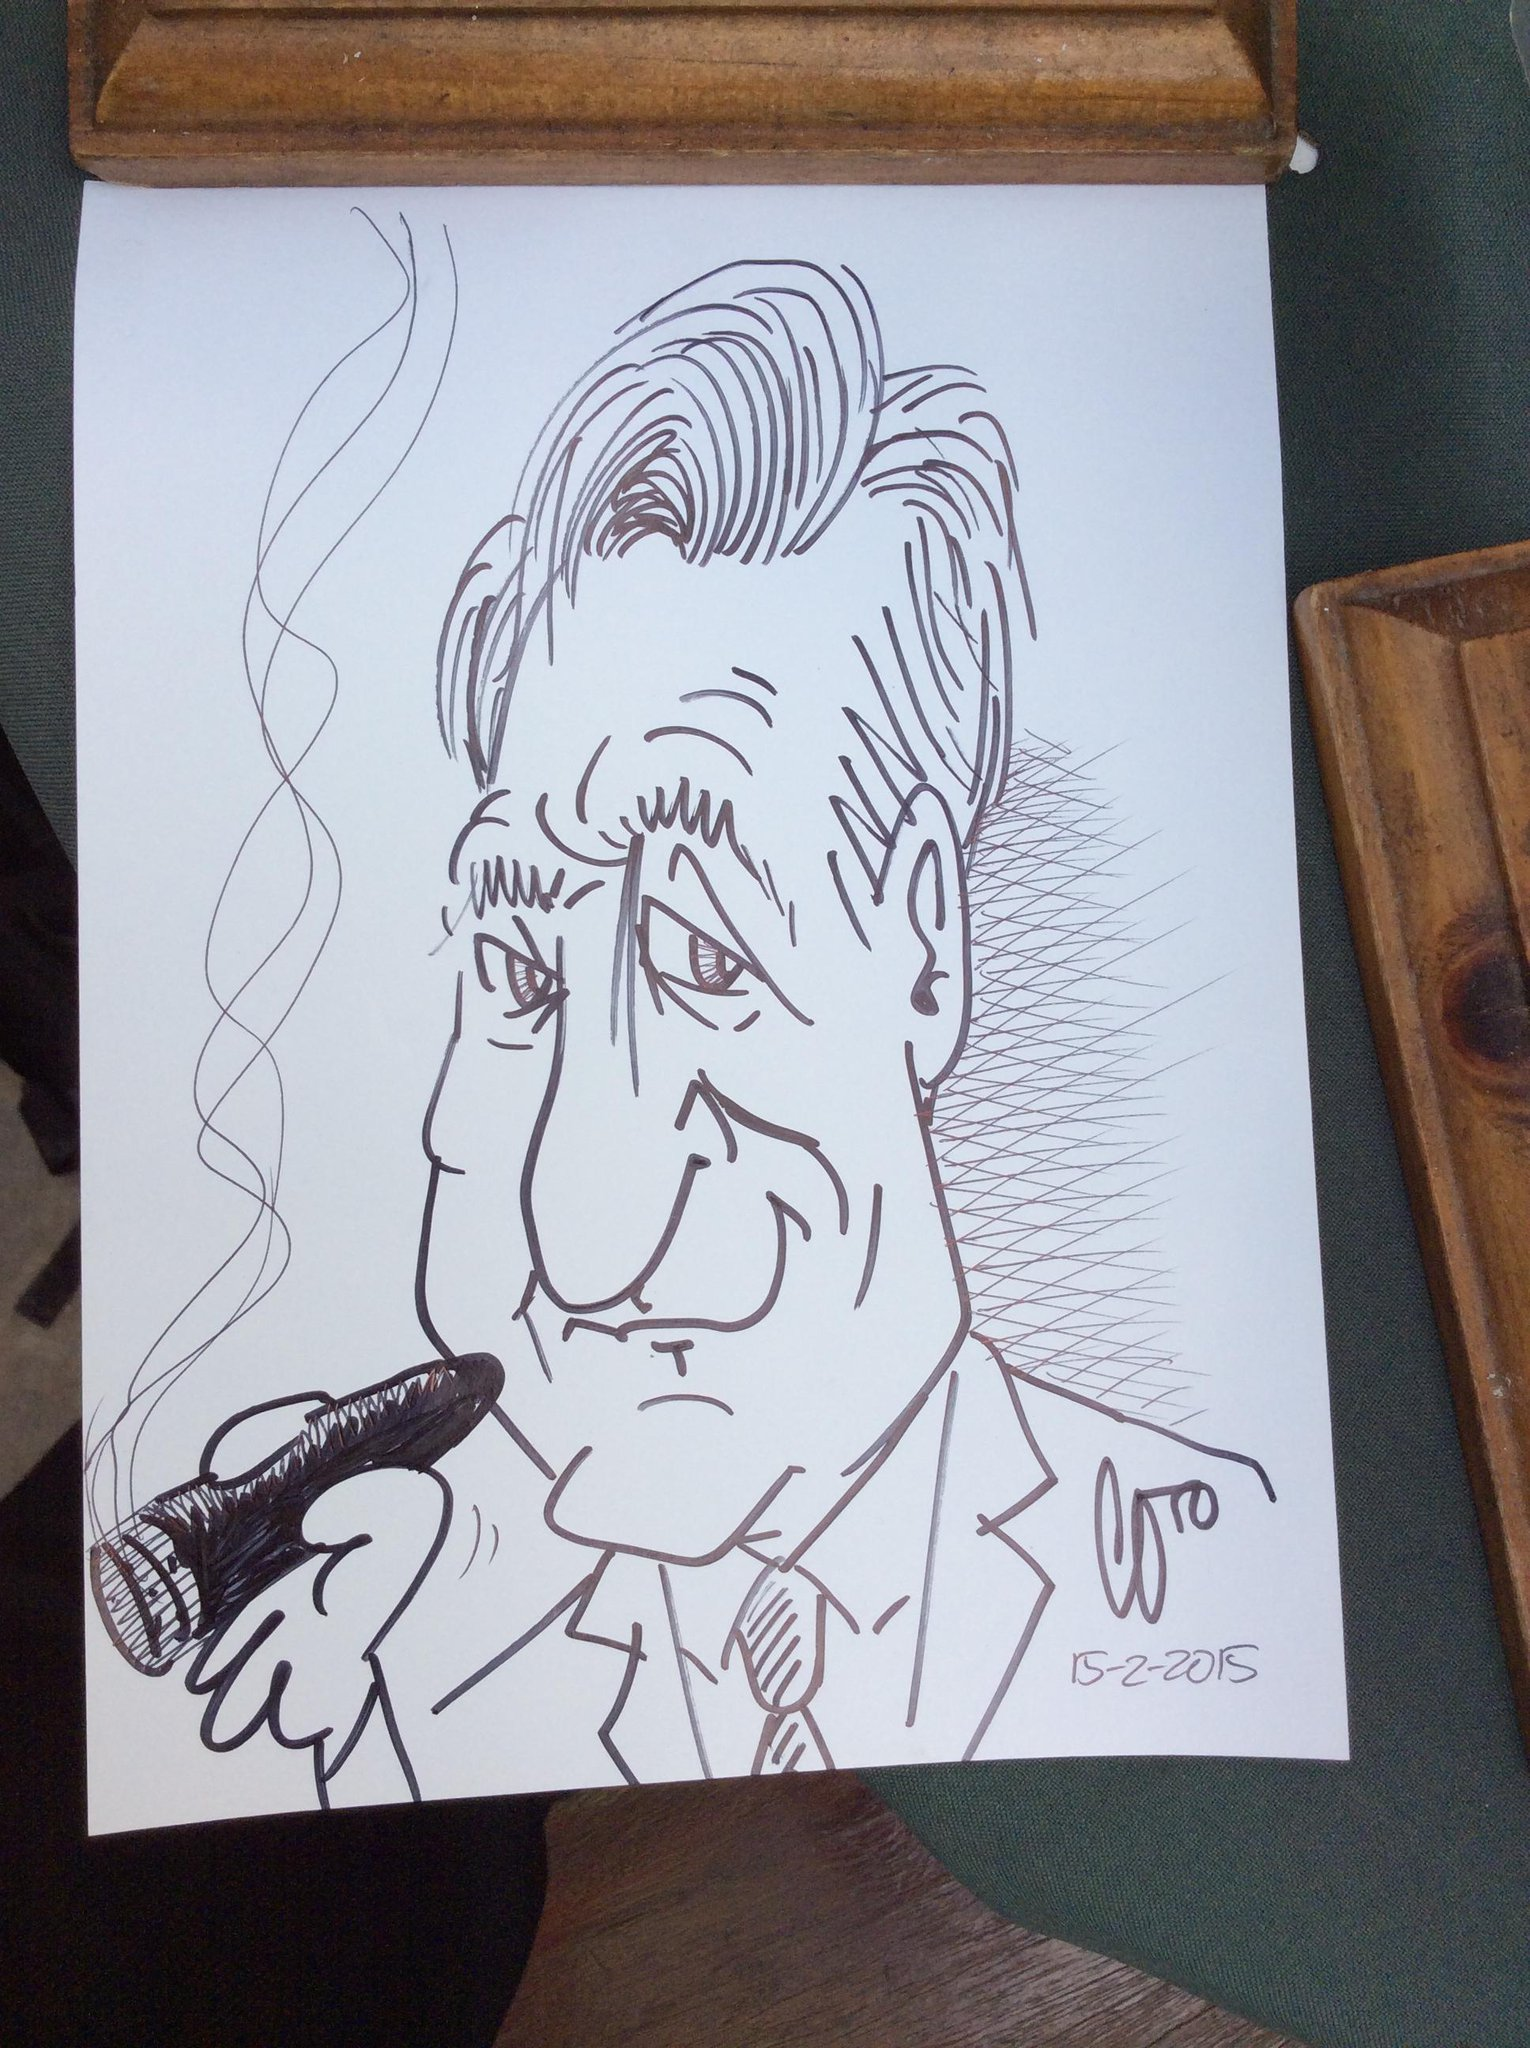 A caricature from a Cuban street artist. At least he got my hair and hand right. #ConanCUBA http://t.co/I1wnOxWMhB